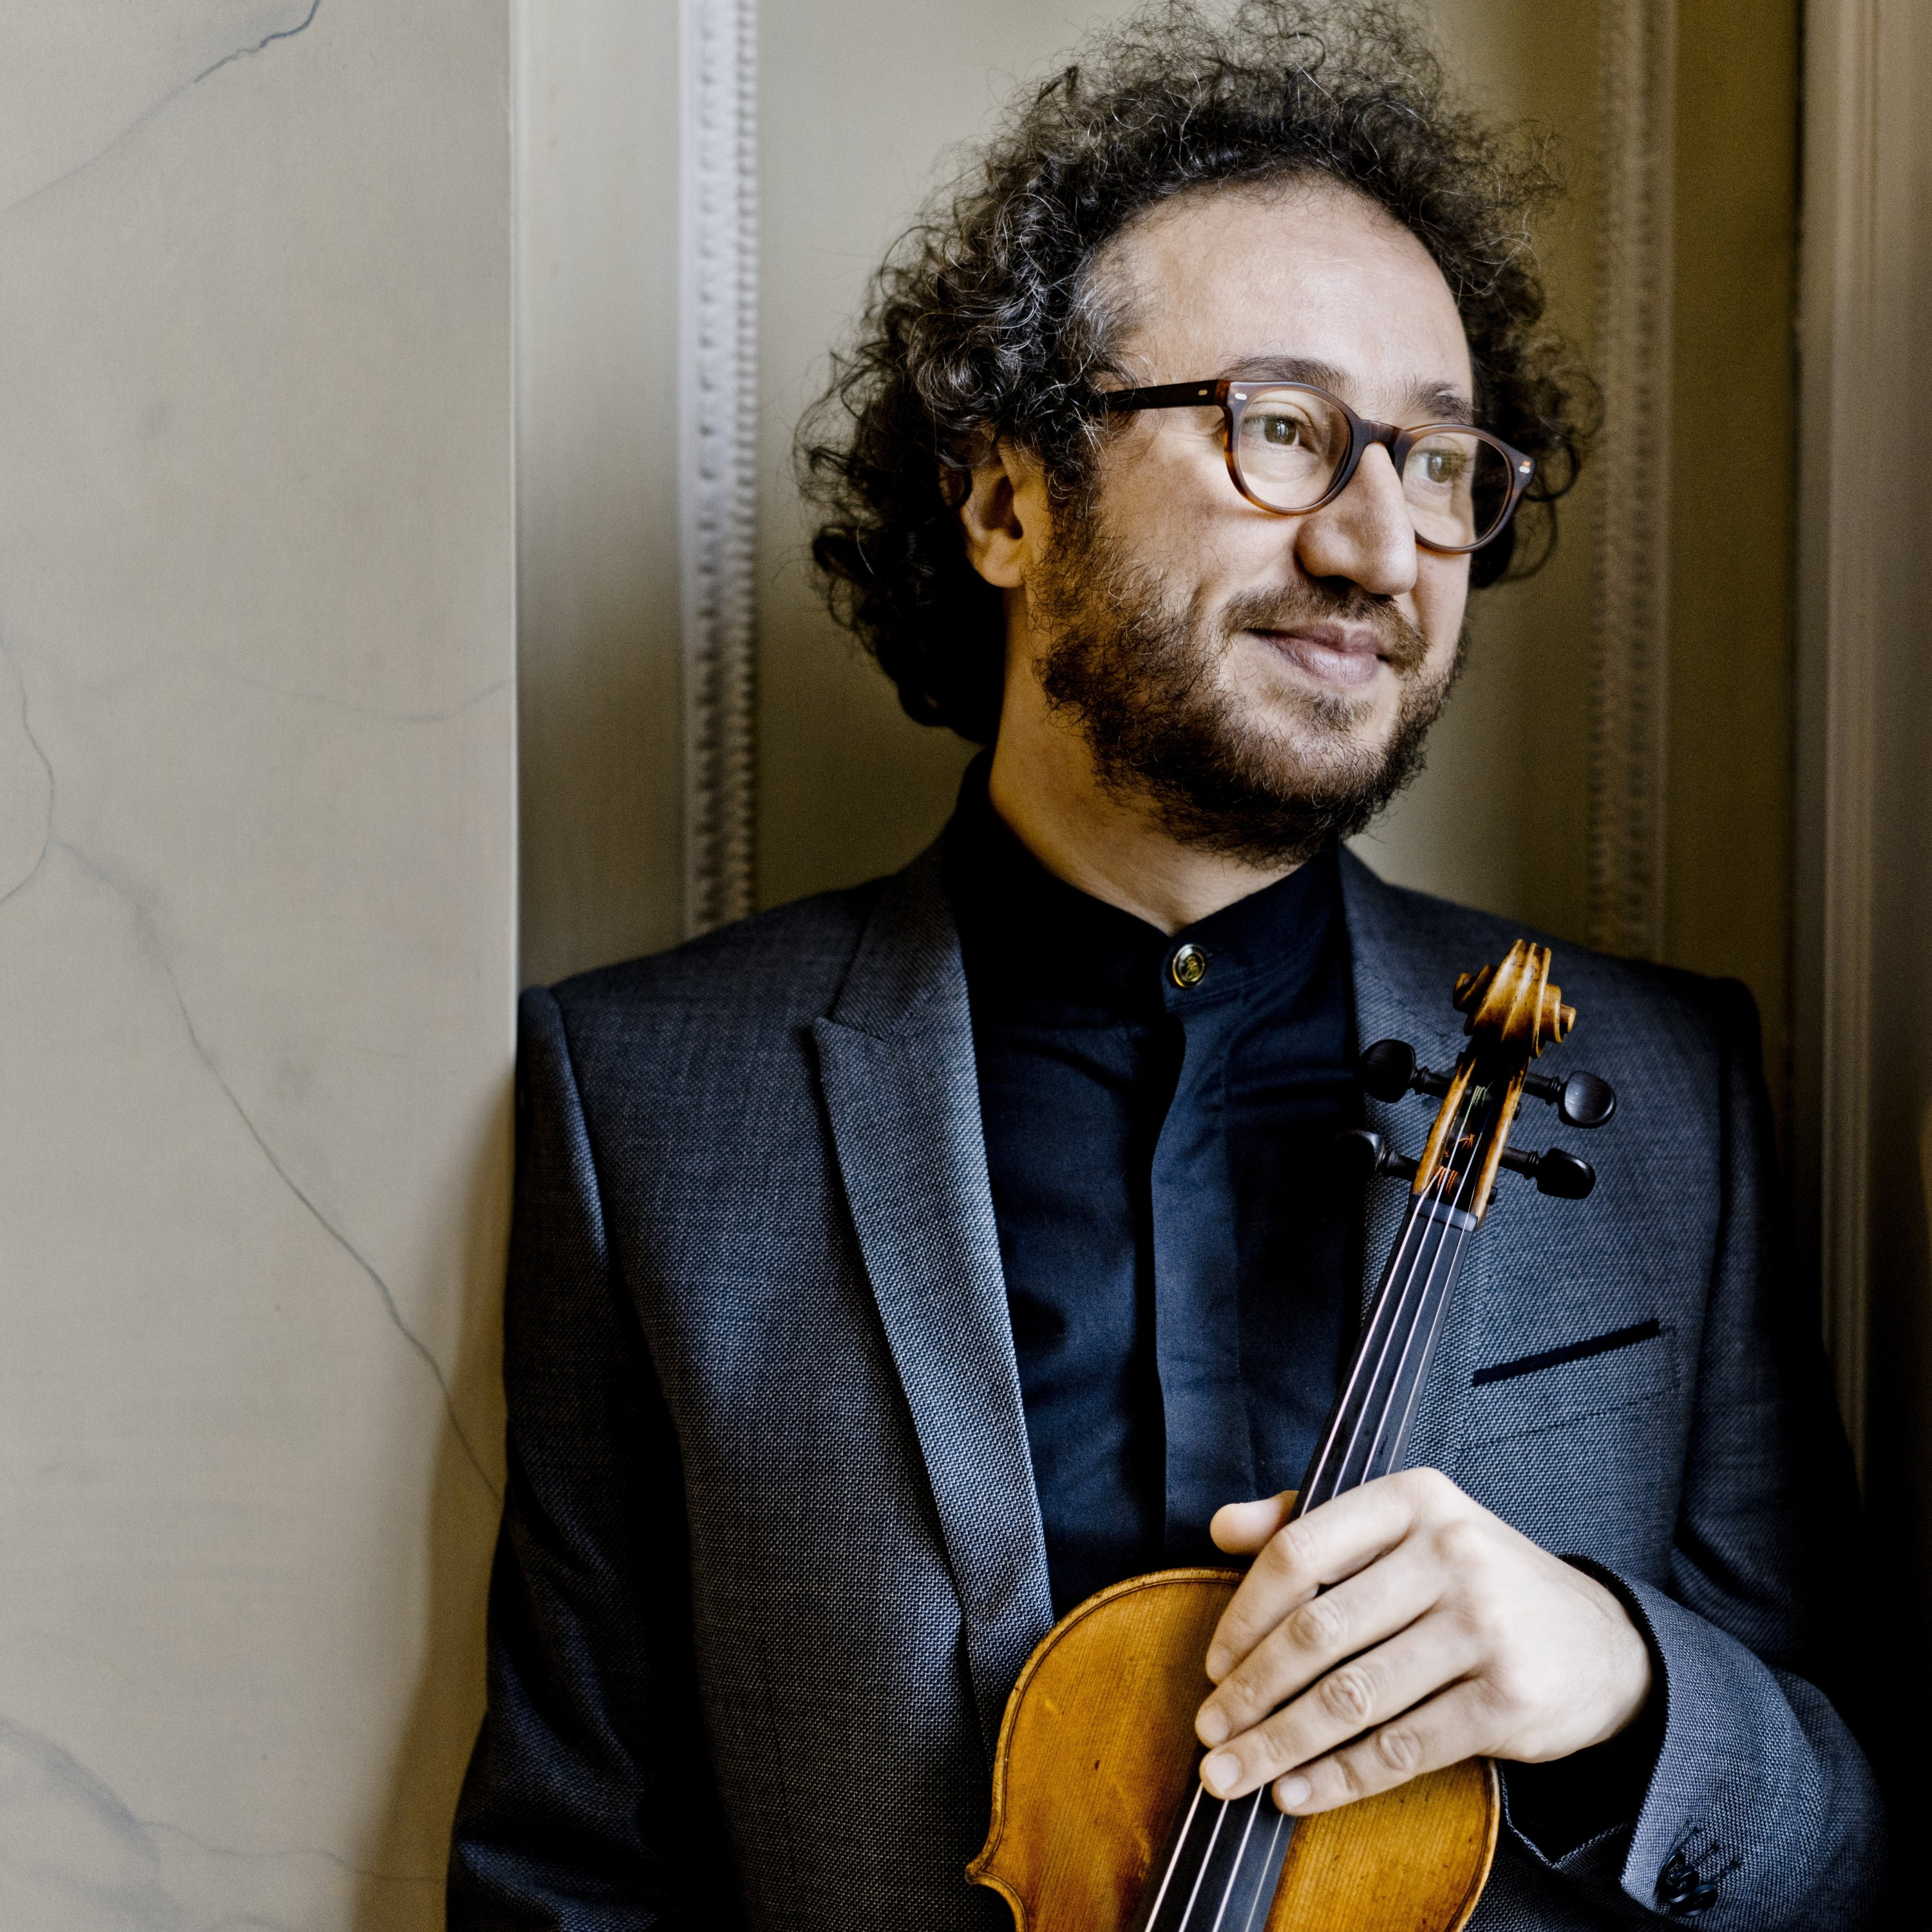 Atilla Aldemir will appear in two performances in the CRR's February lineup.